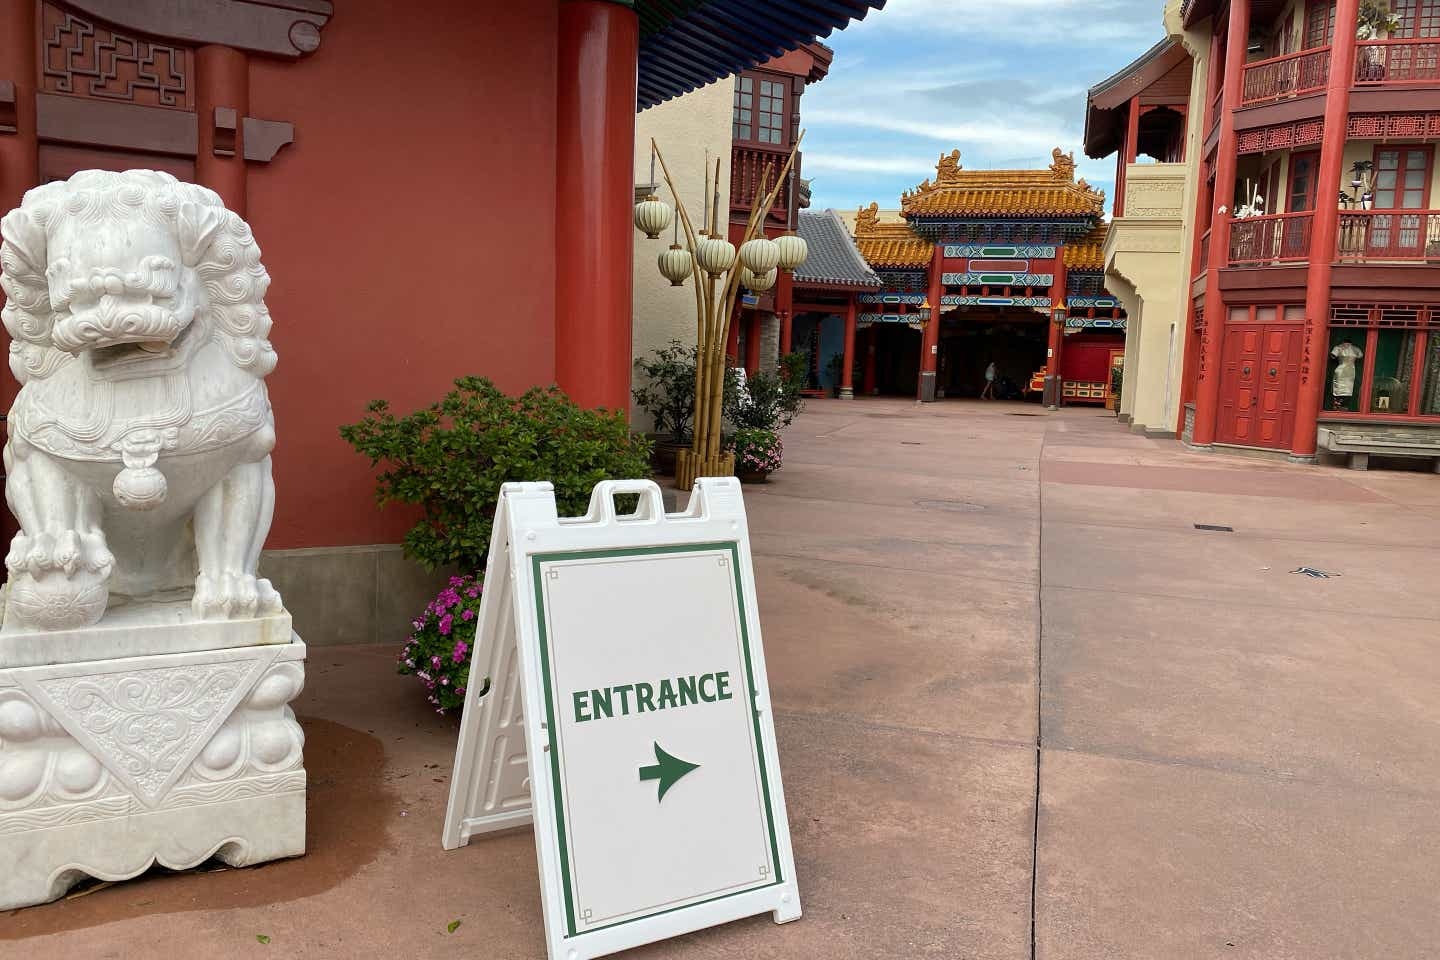 Exterior shot of the China Pavilion at Epcot-World Showcase with an Entrance sign indicating the shop is open.